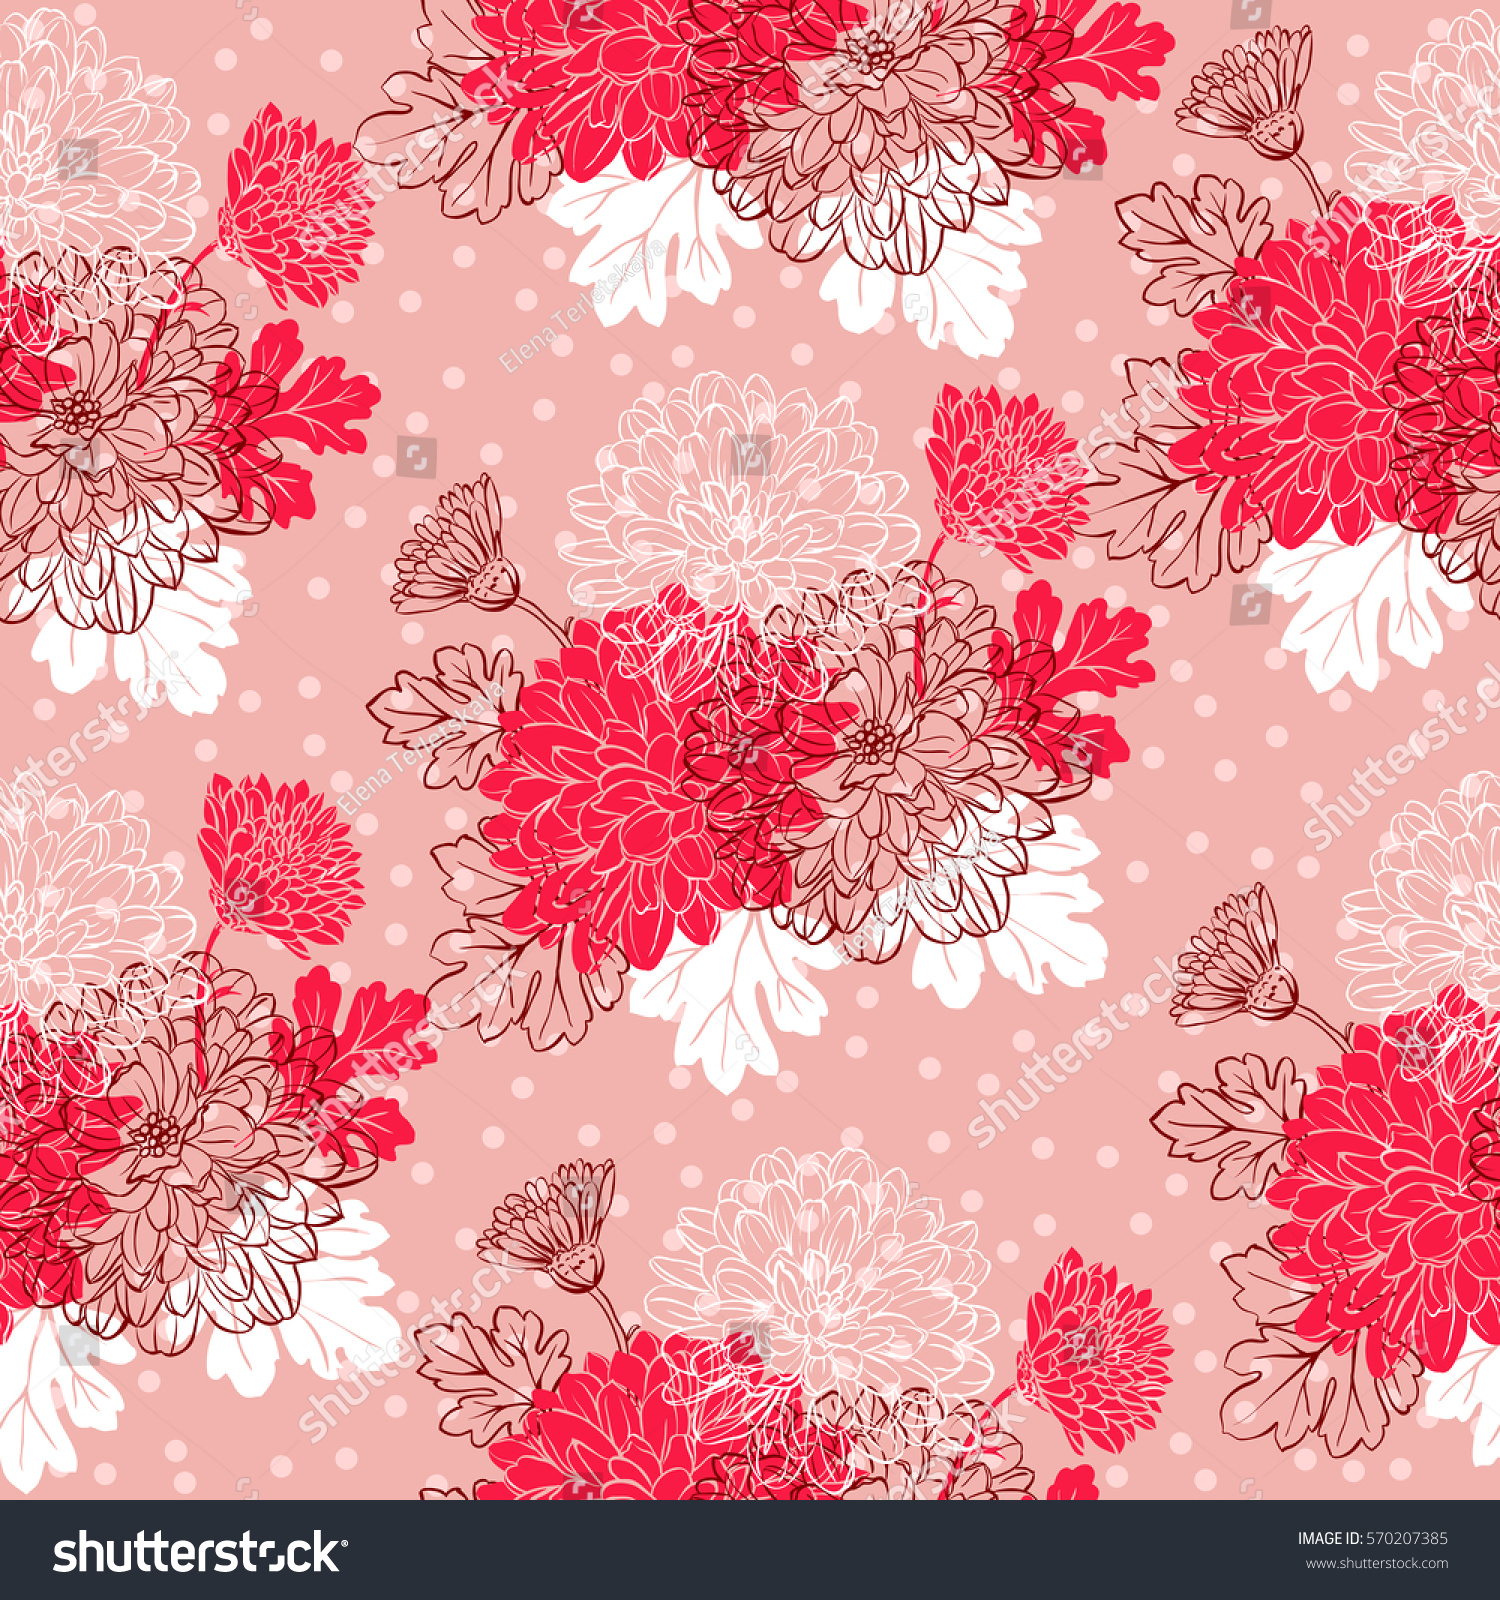 Pink floral seamless vector background floral hrysanthemum seamless - Seamless Pattern With Chrysanthemum Flowers Vector Illustration